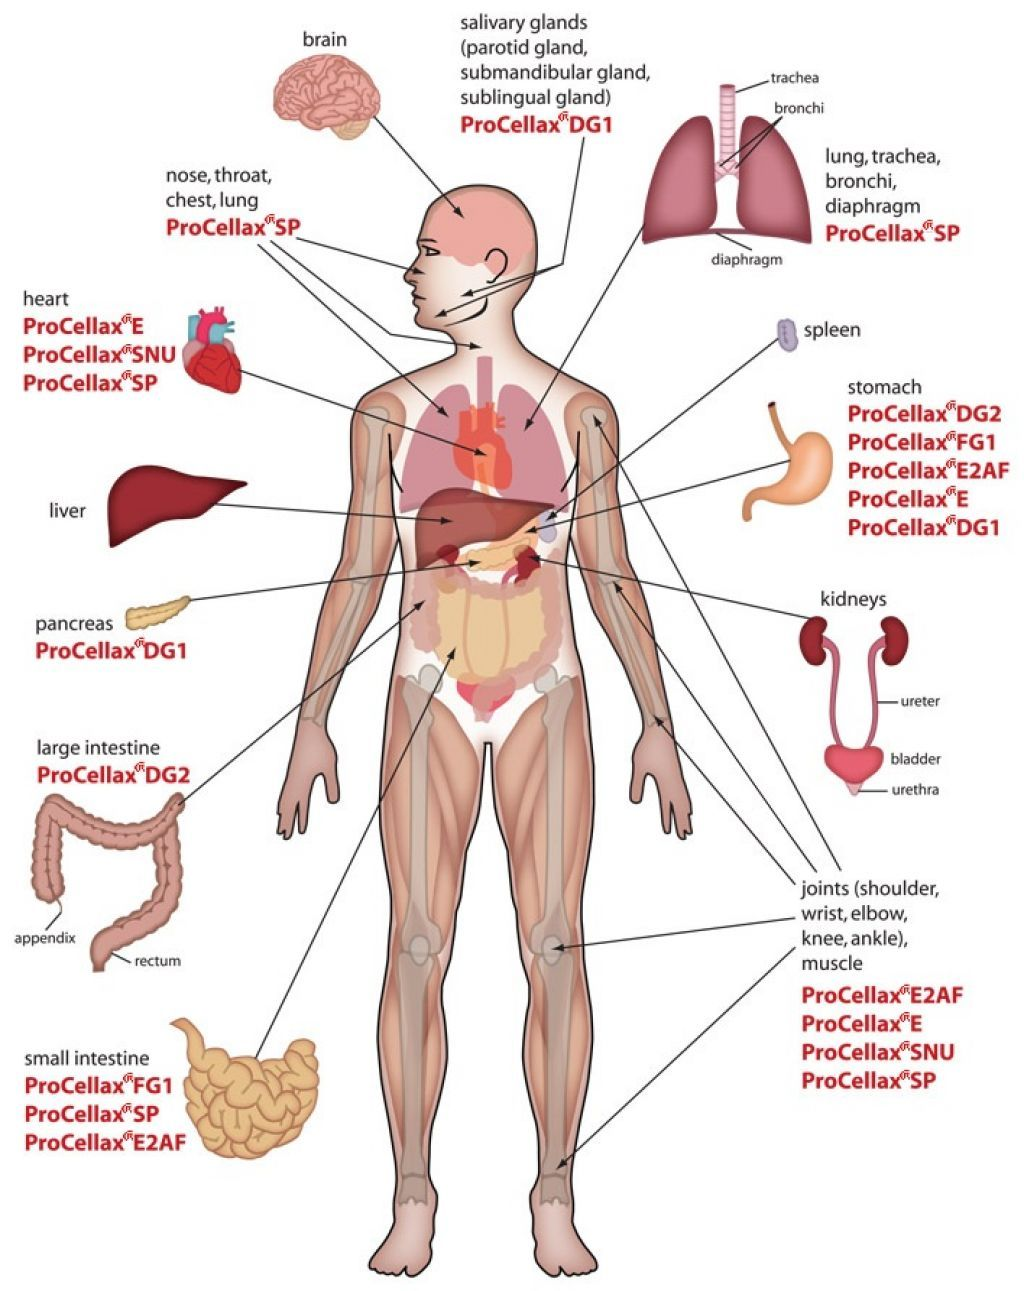 Human body anatomy internal organs diagram stay fit and strong human body anatomy internal organs diagram ccuart Image collections